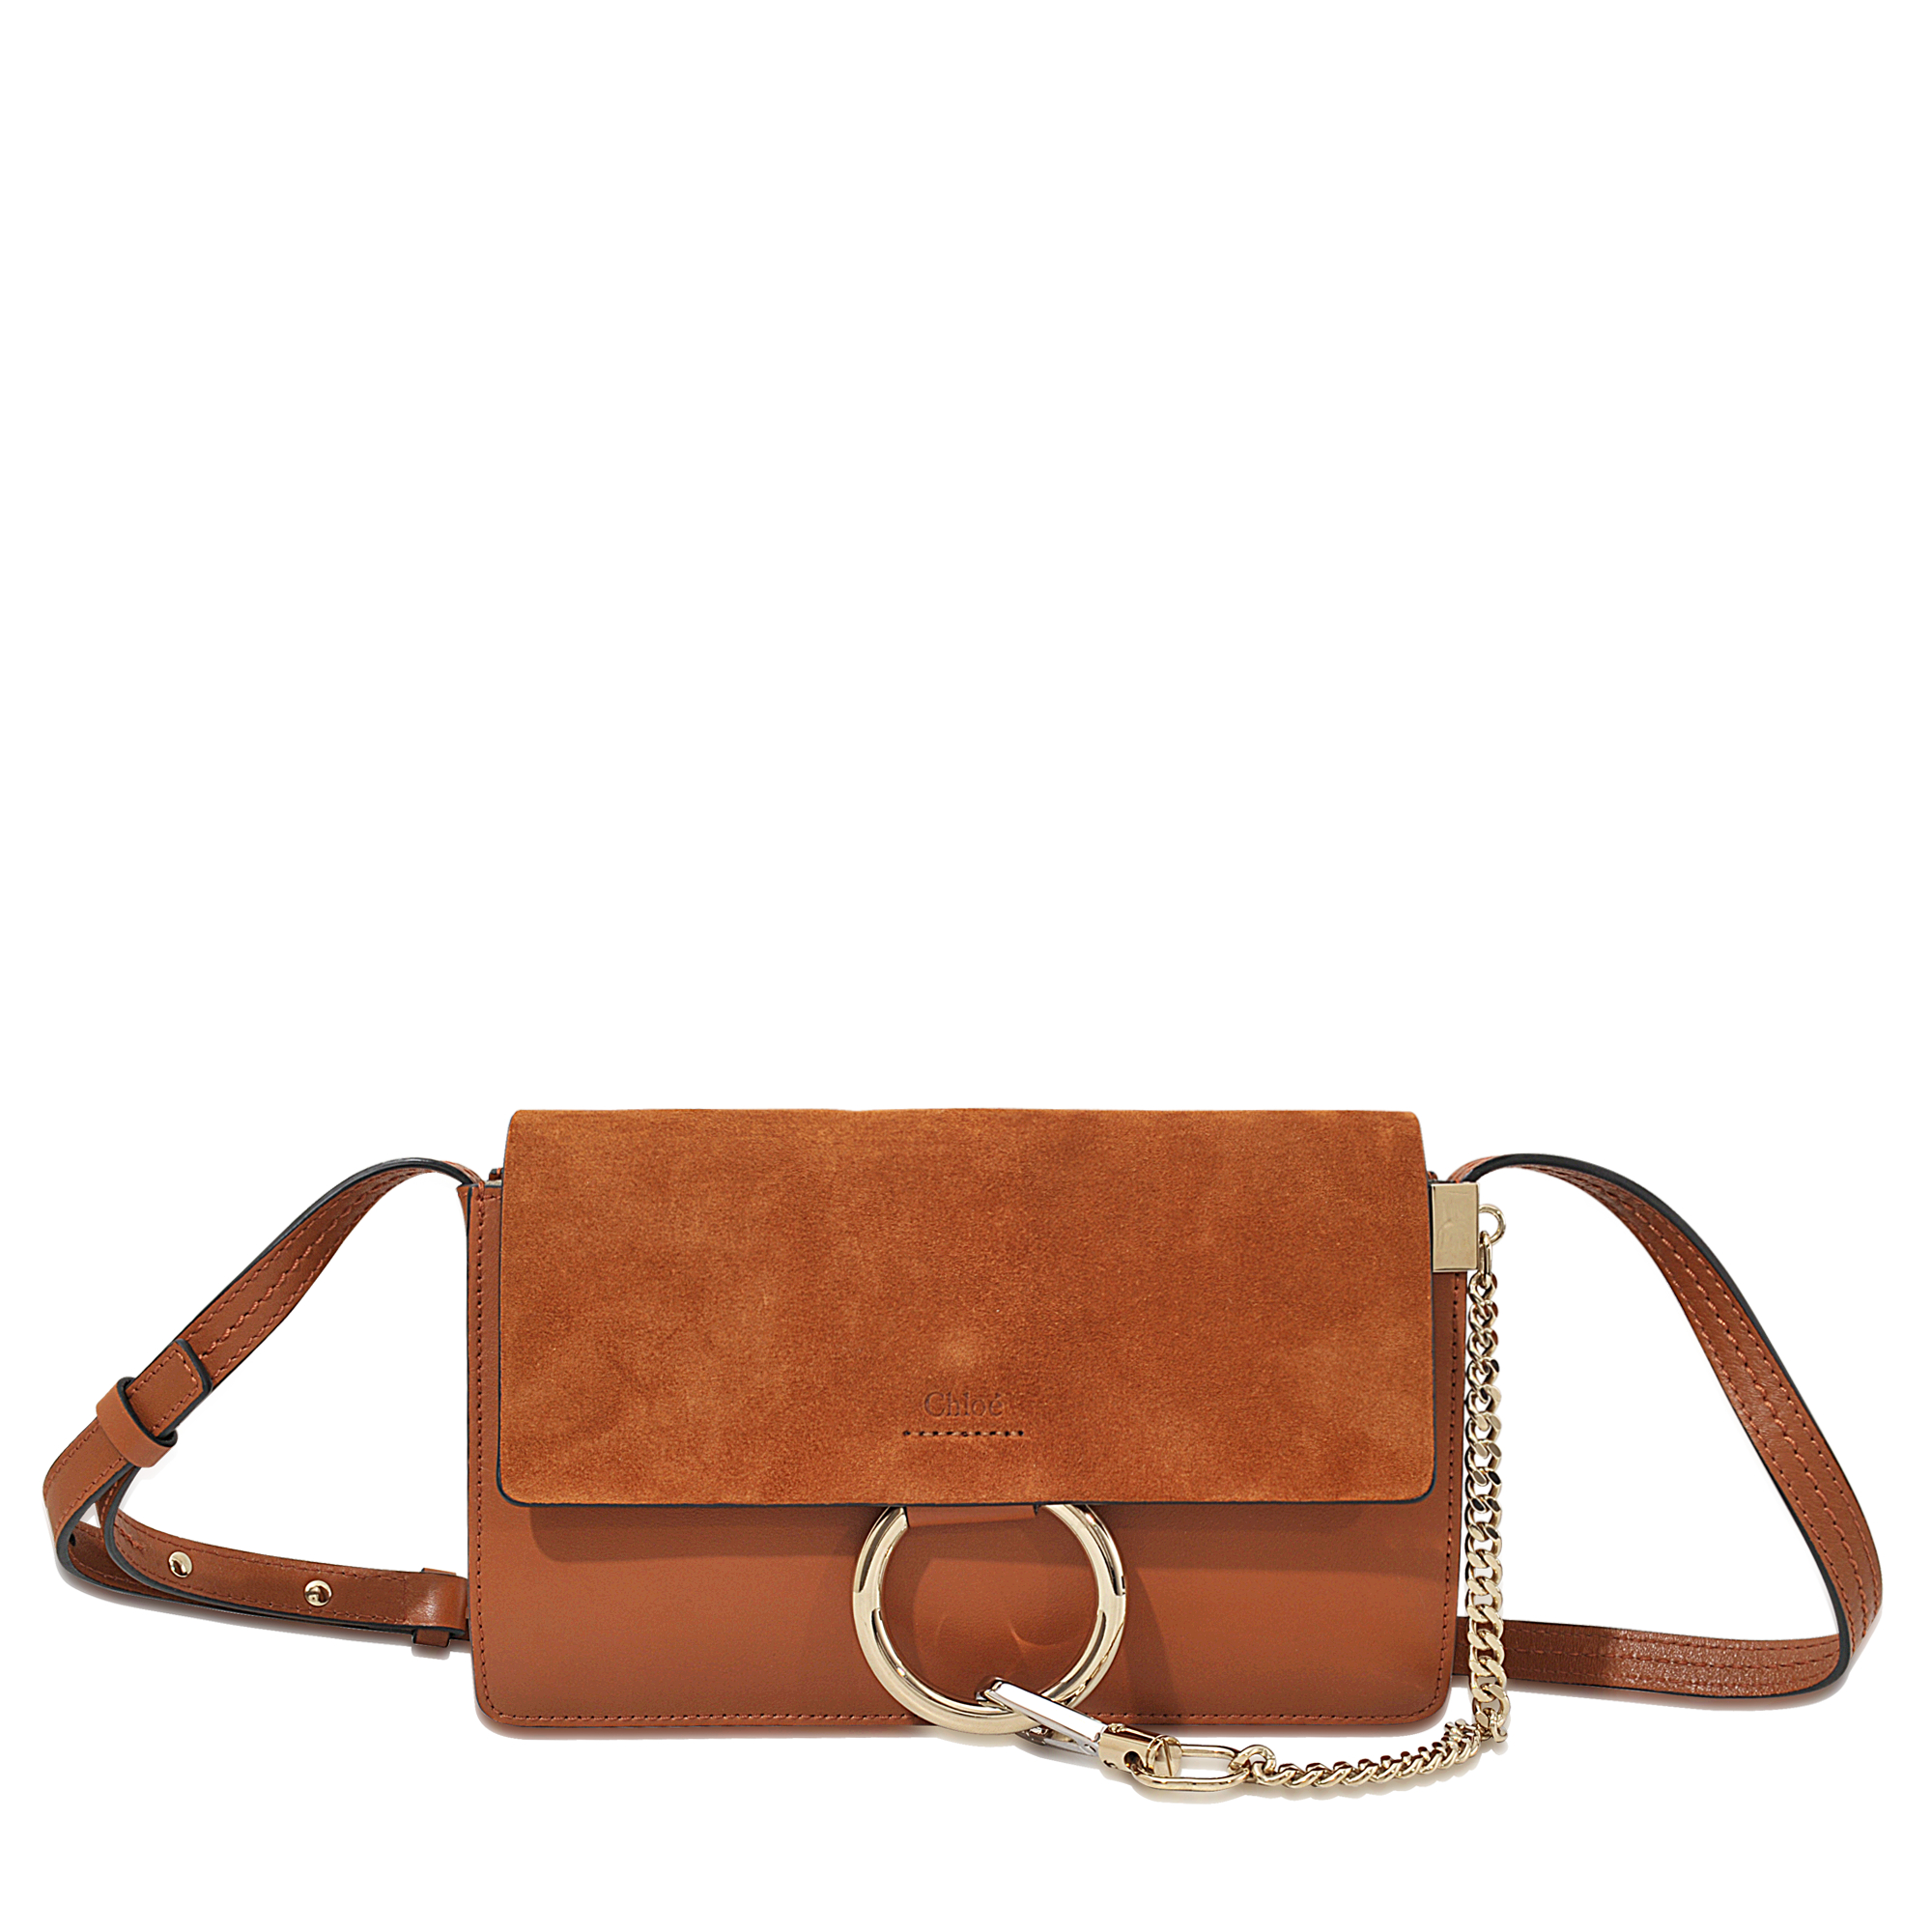 Chlo�� Faye Small Bag With Strap in Brown | Lyst